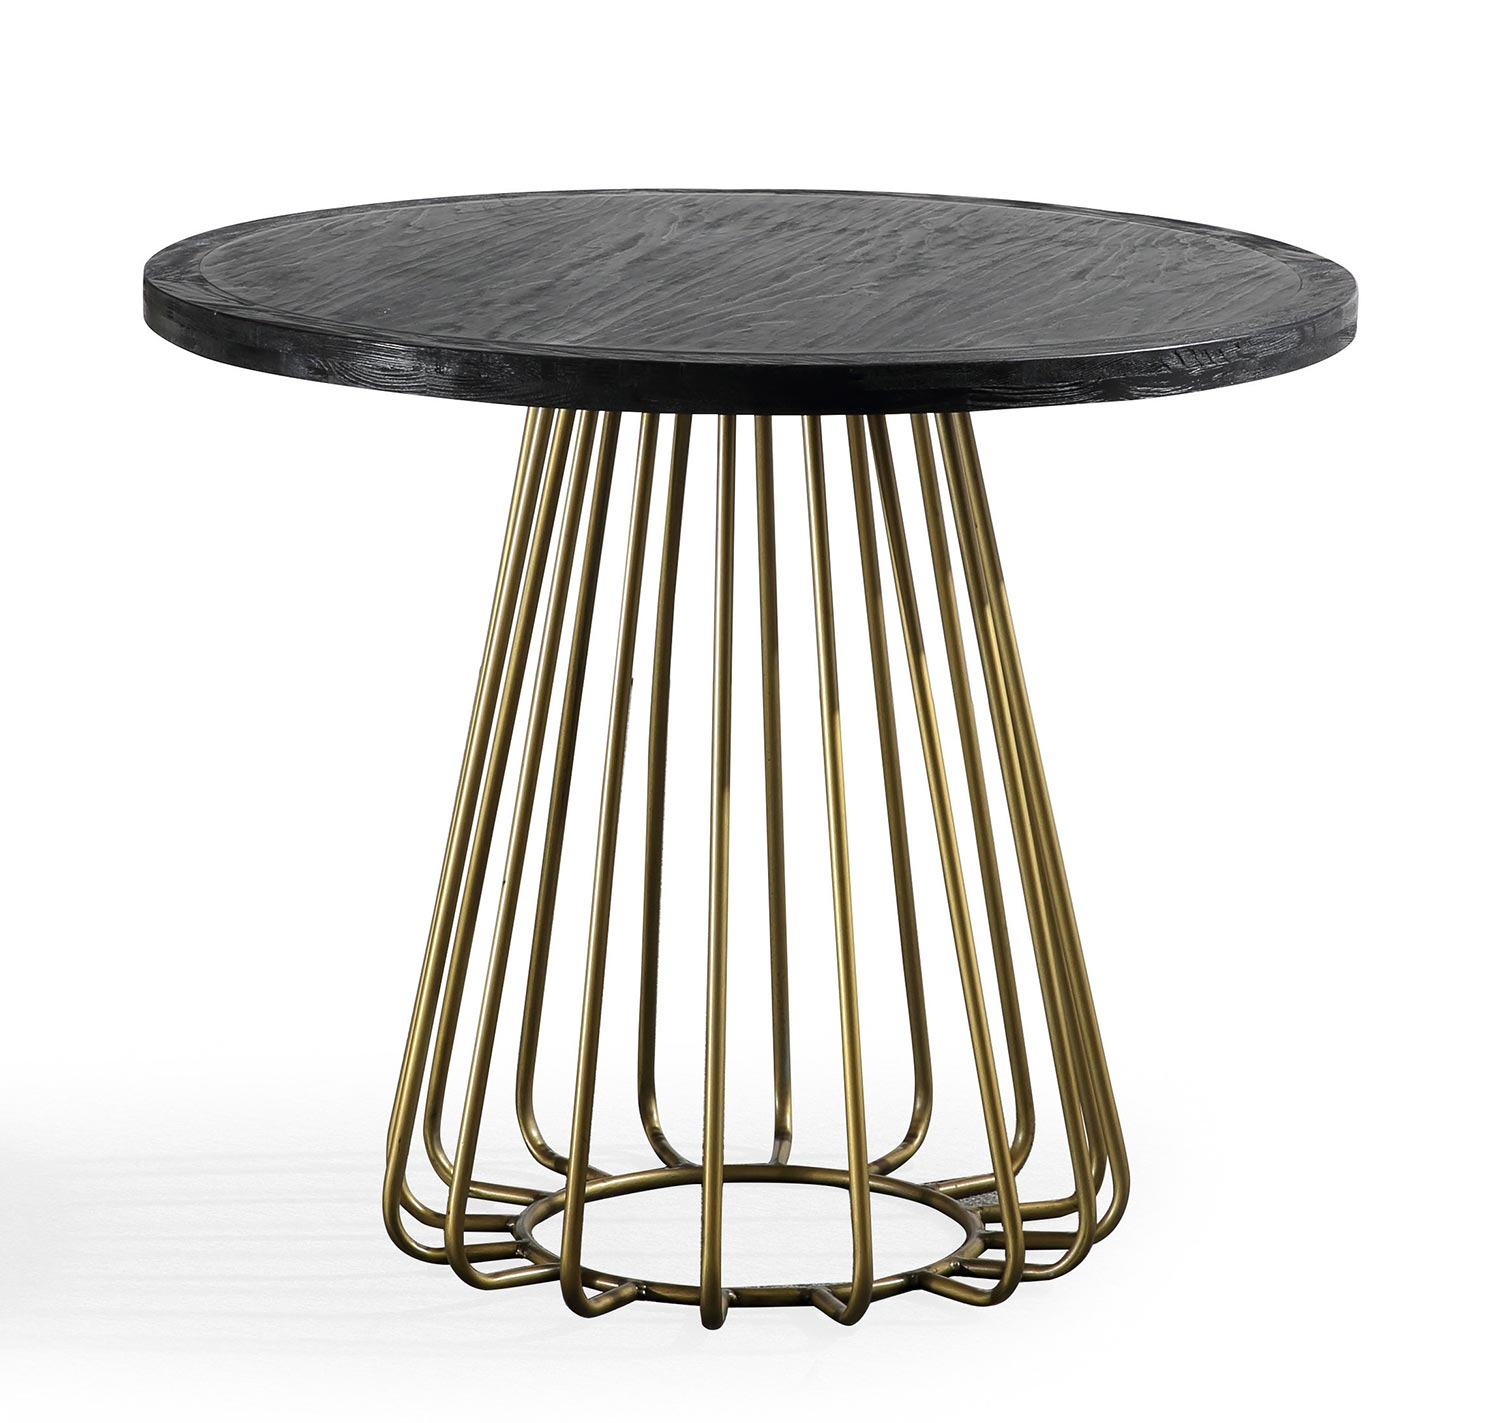 TOV Furniture Madrid Pine Table - Matte Black